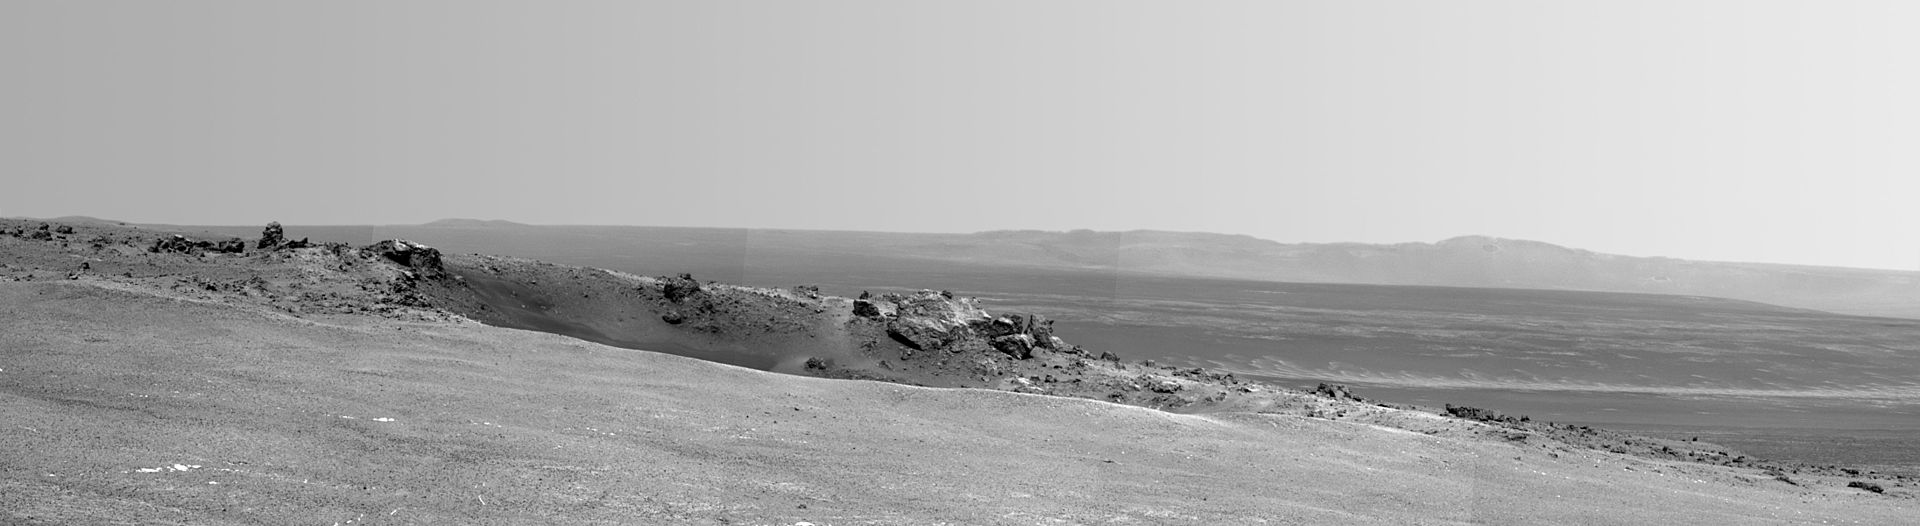 pia14509_arrival_at_spirit_point_by_mars_rover_opportunity.jpg